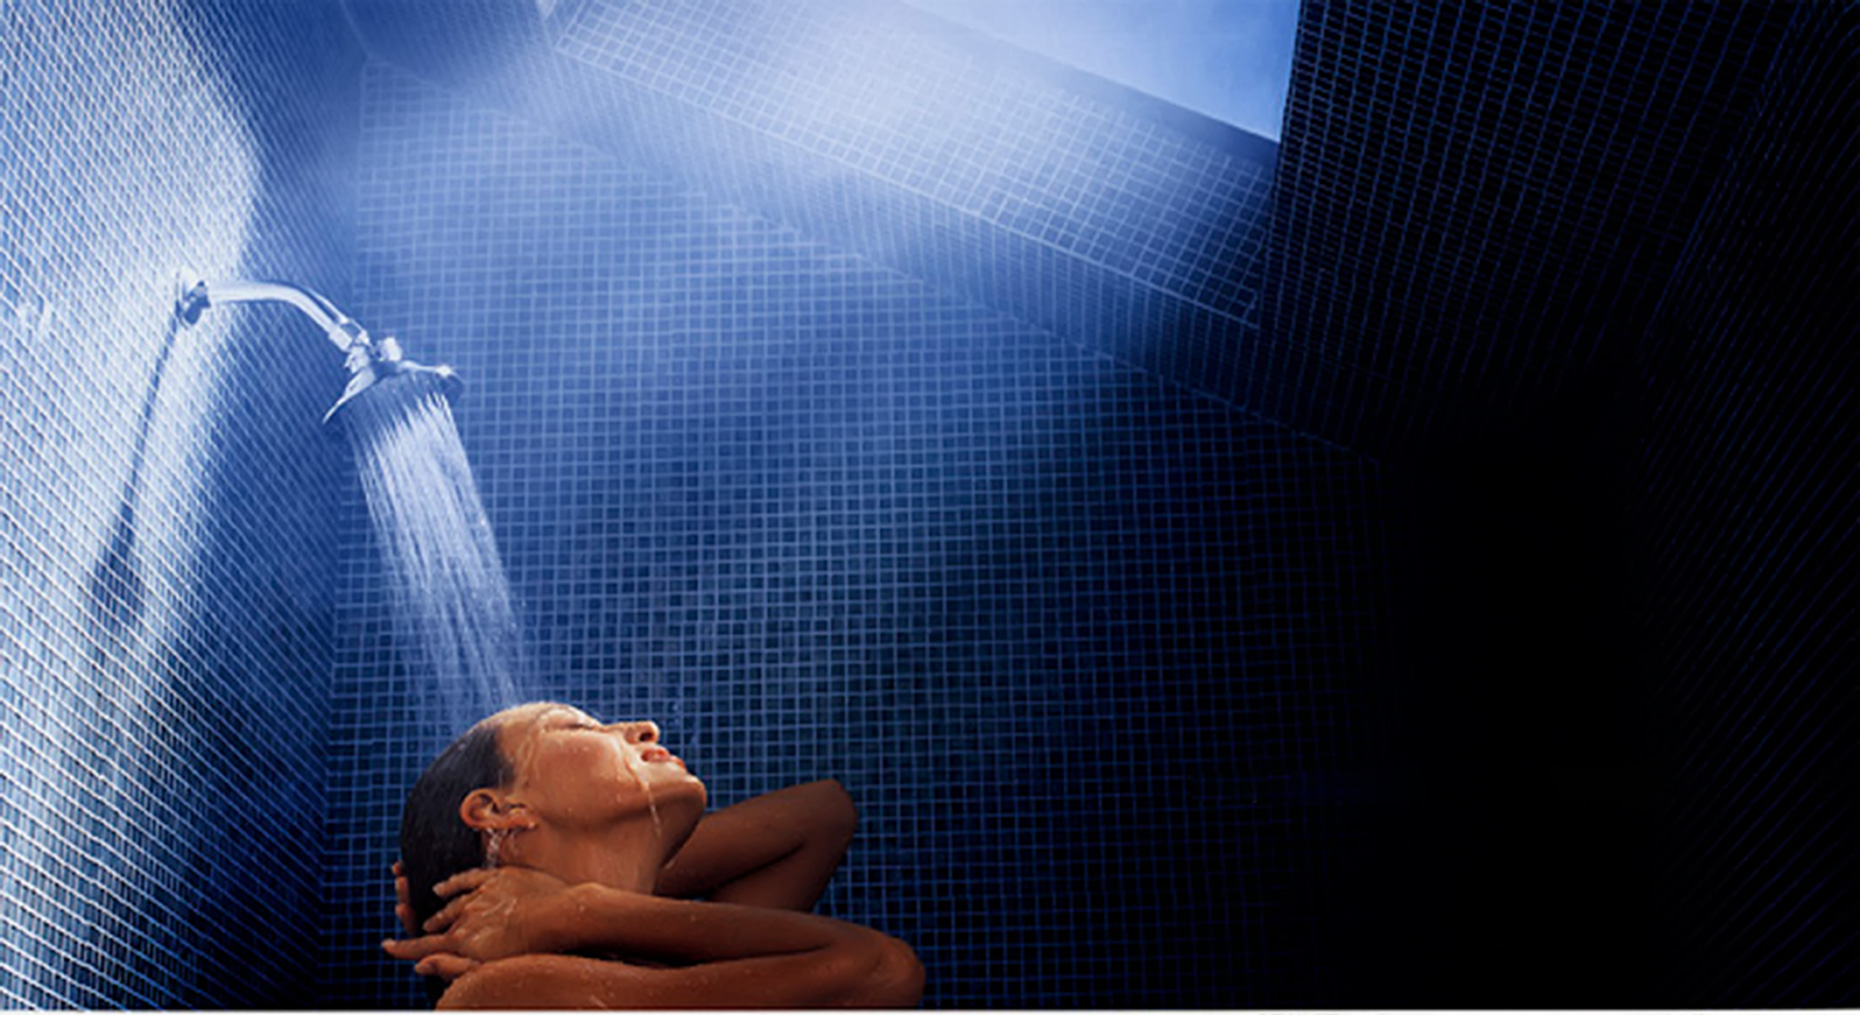 woman in shower with skylight and blue tile